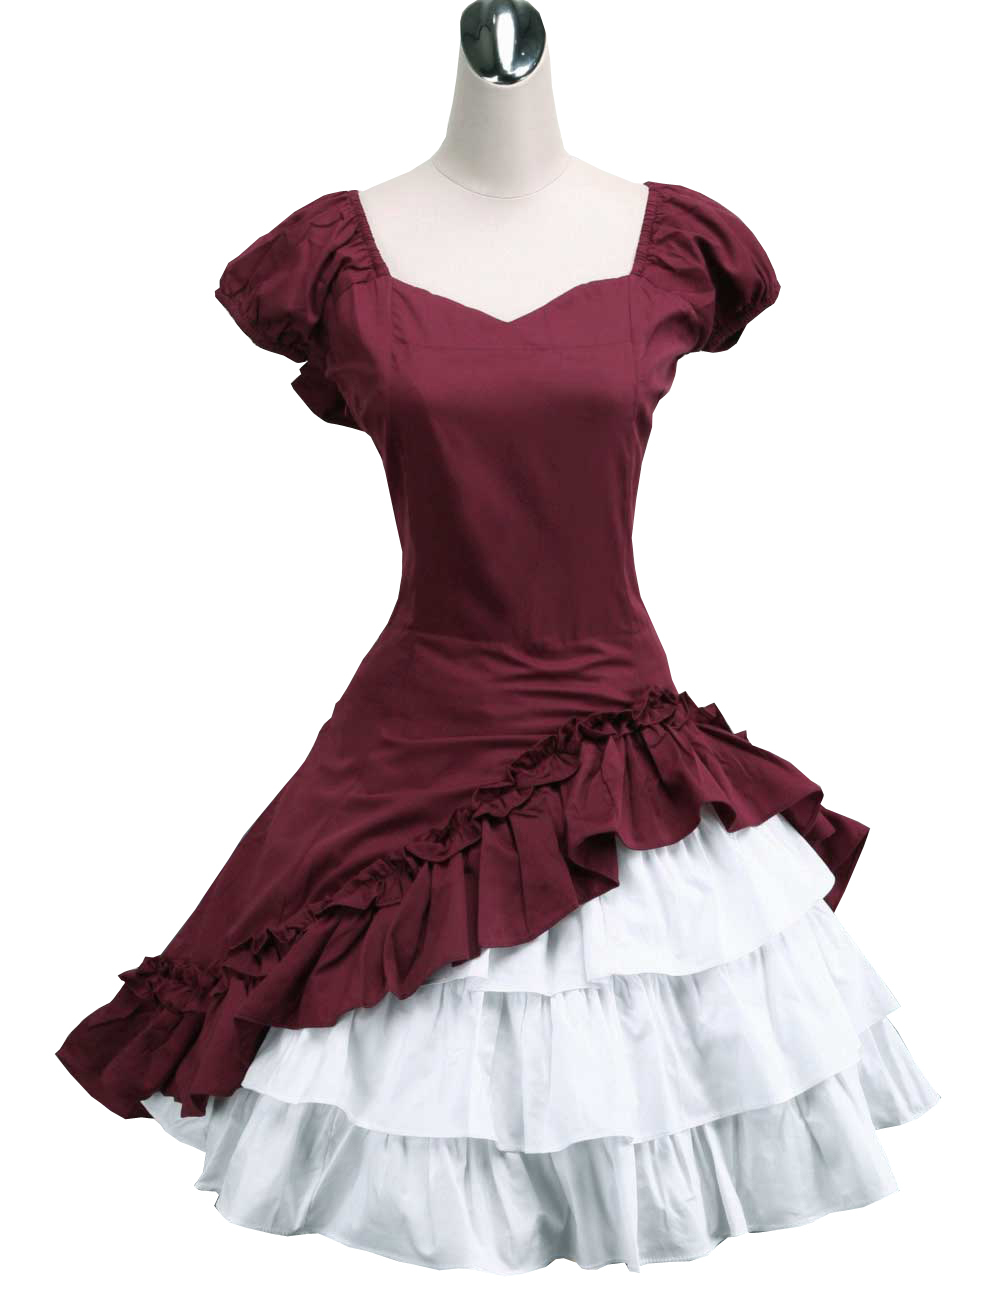 Primary image for ZeroMart Deep Red Cotton Bow Ruffles Vintage Victorian Classic Lolita Dress